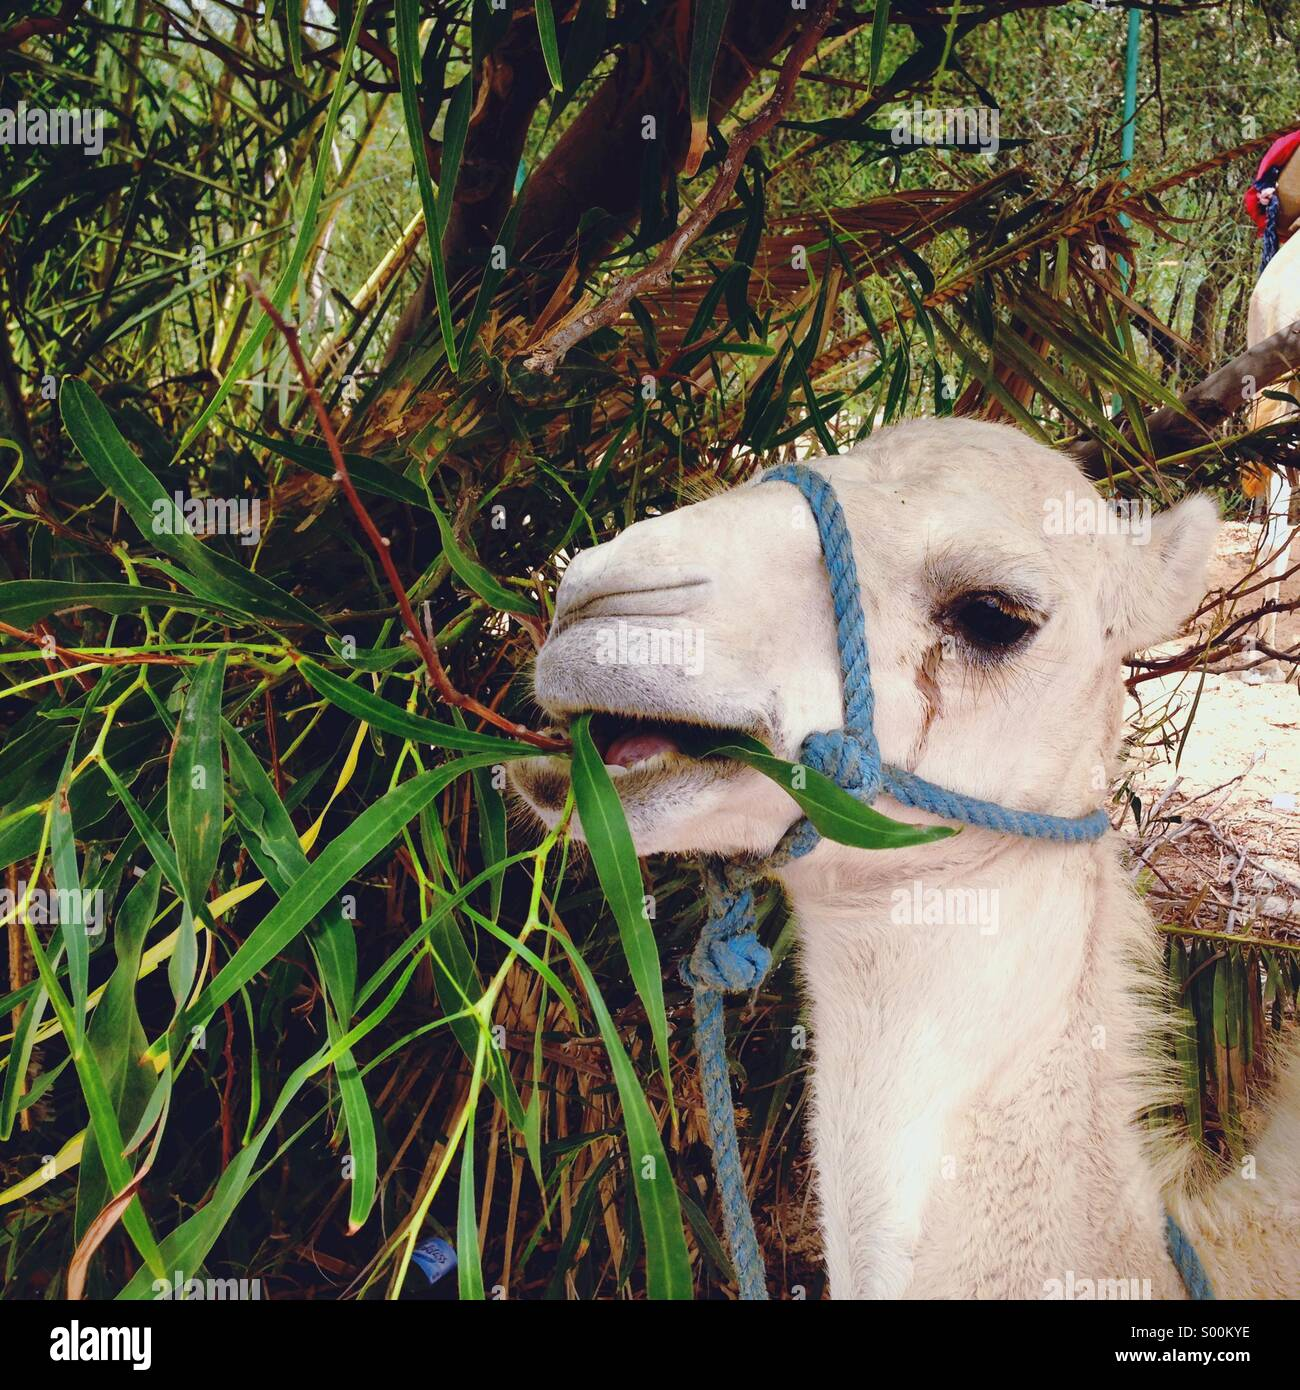 Camel eating leafs - Stock Image